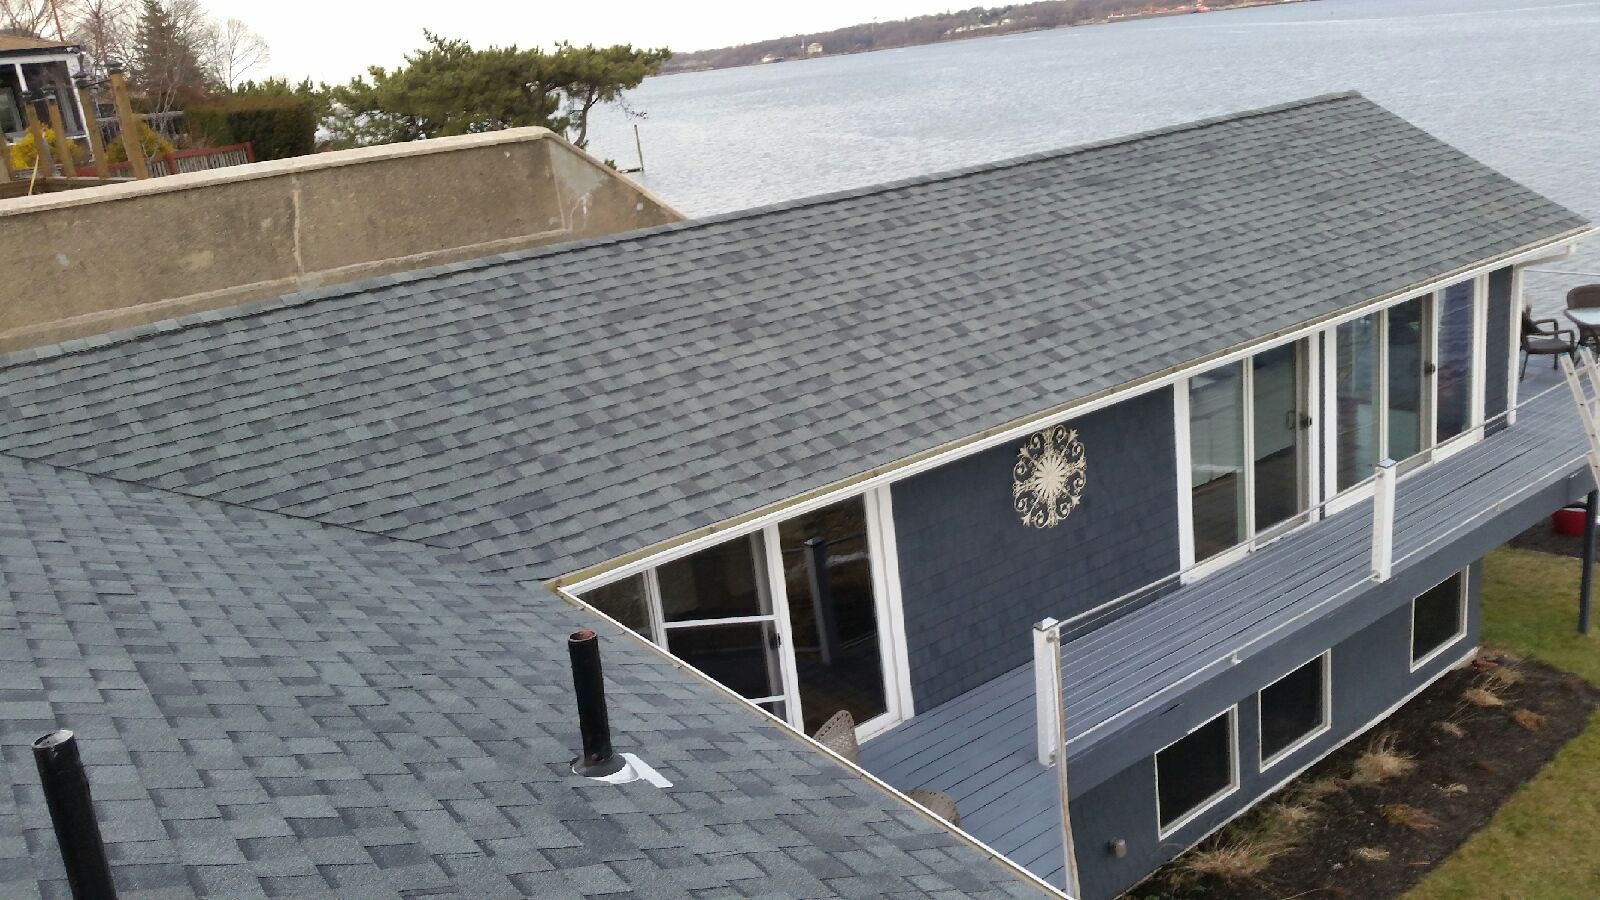 Exterior Remodeling Roofing Siding Window Replacement in Rhode Island